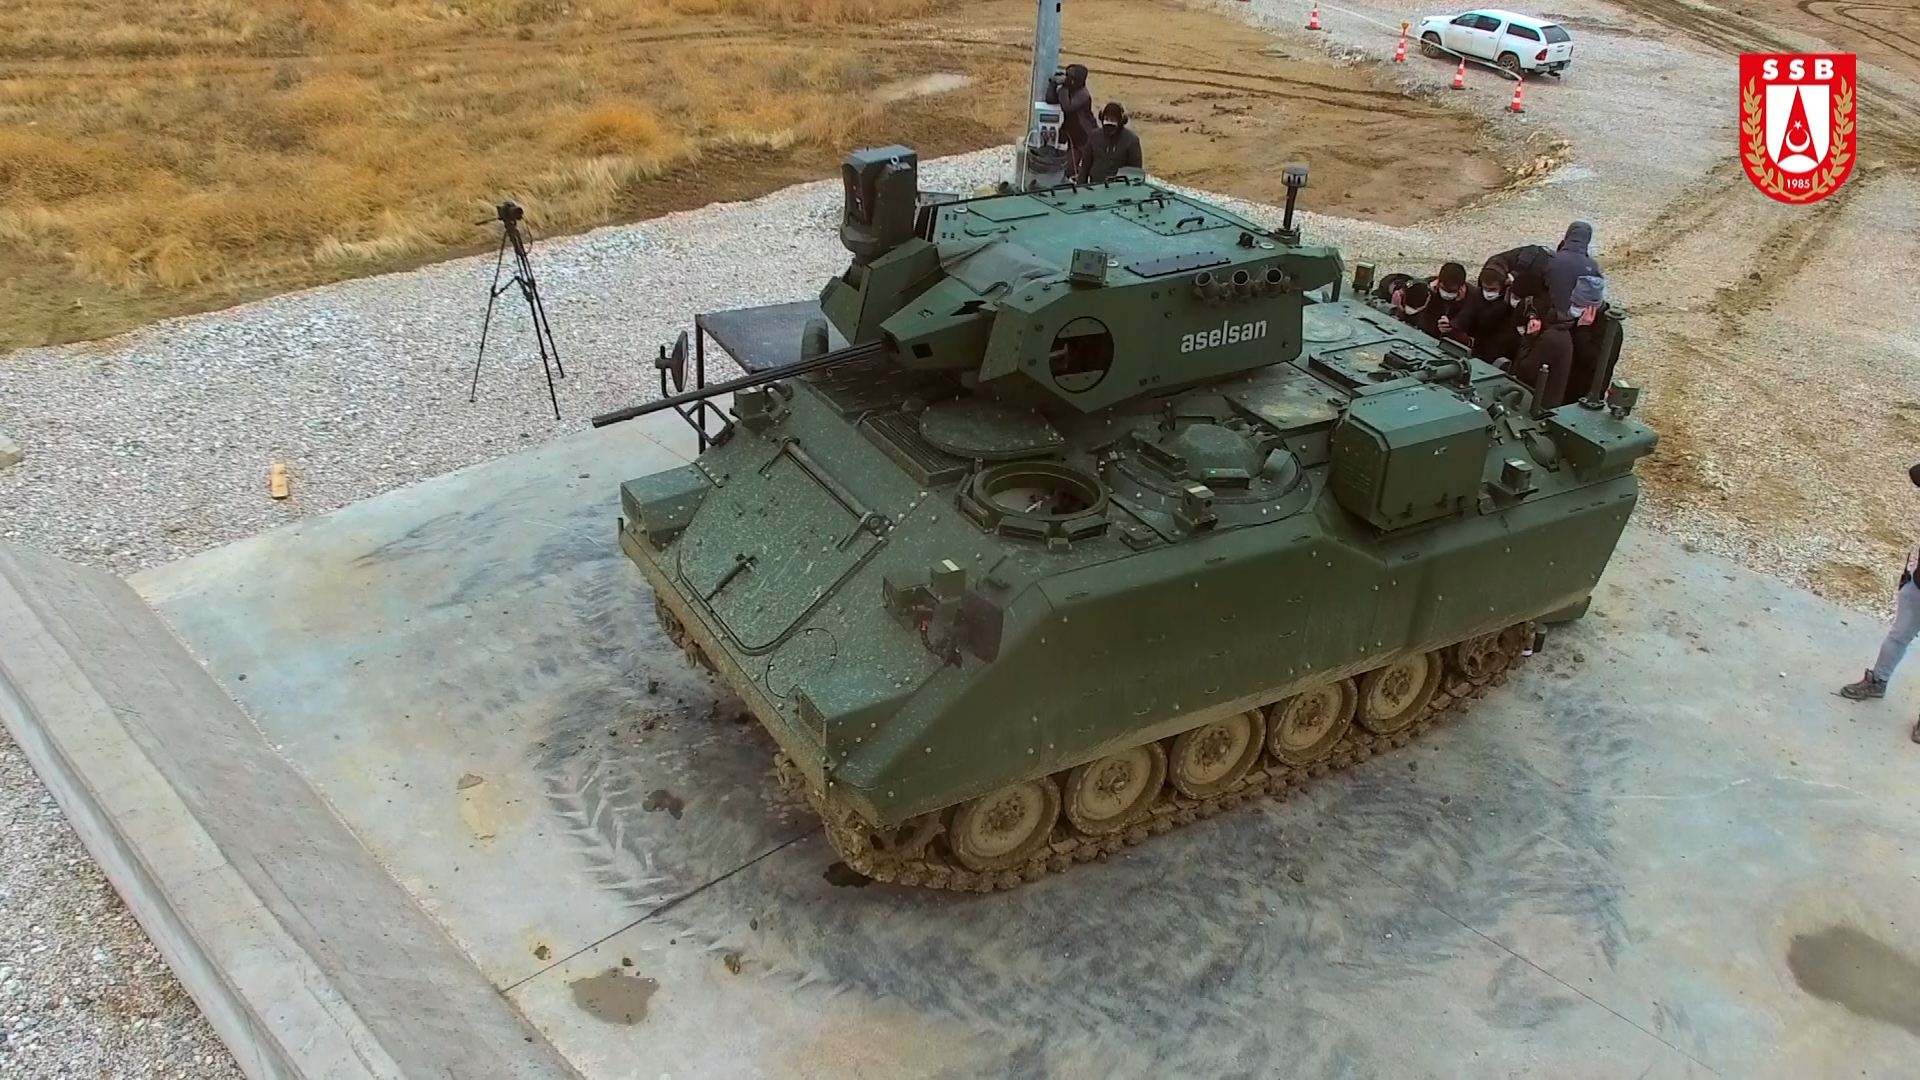 Driving & Firing Tests were Successfully Performed in the ACV Modernization Project